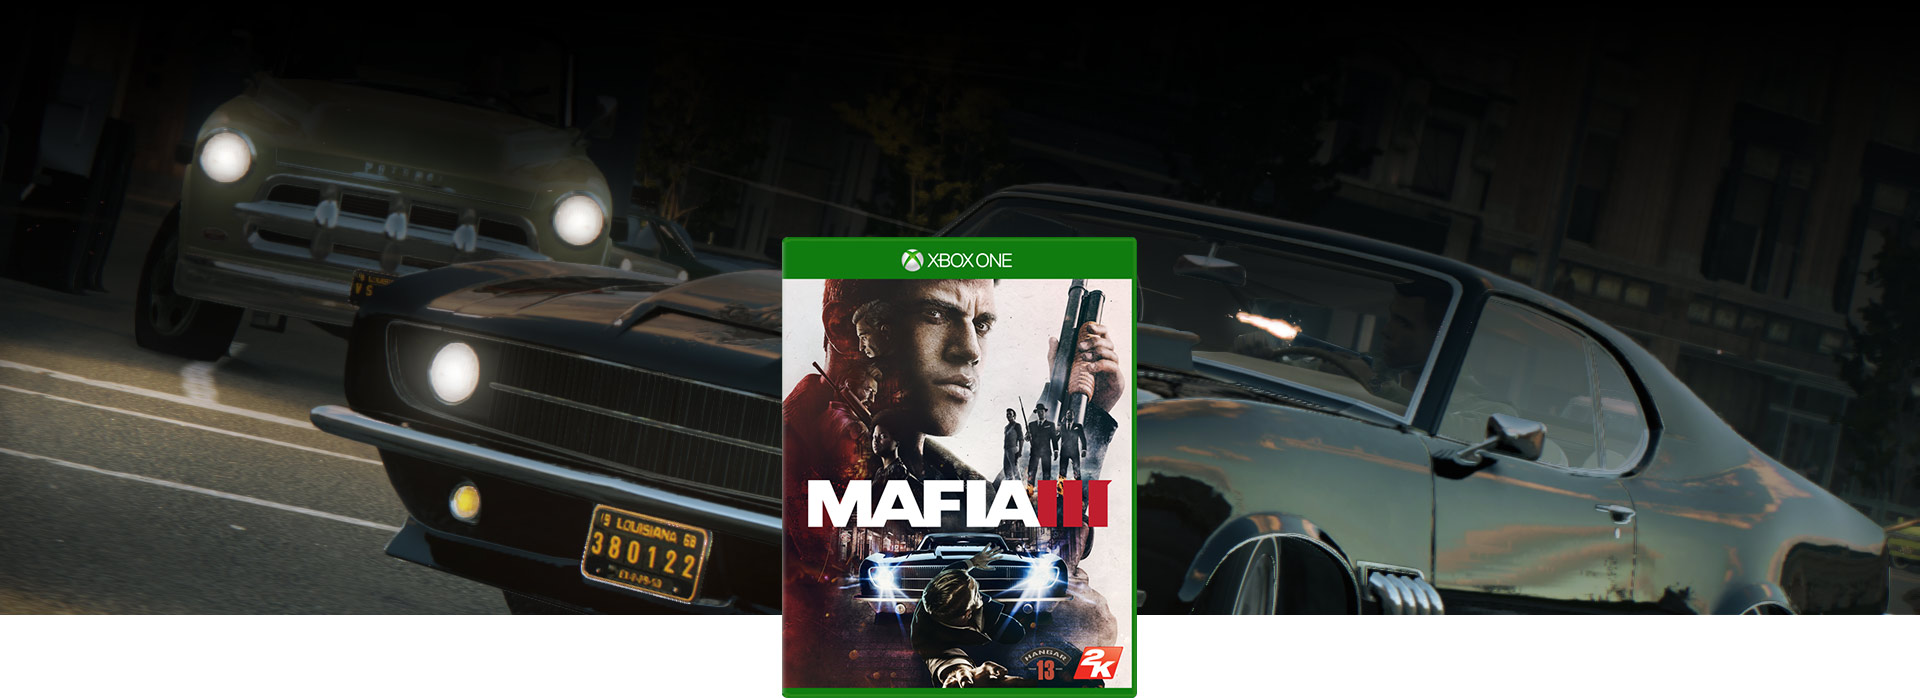 Mafia III-coverbillede